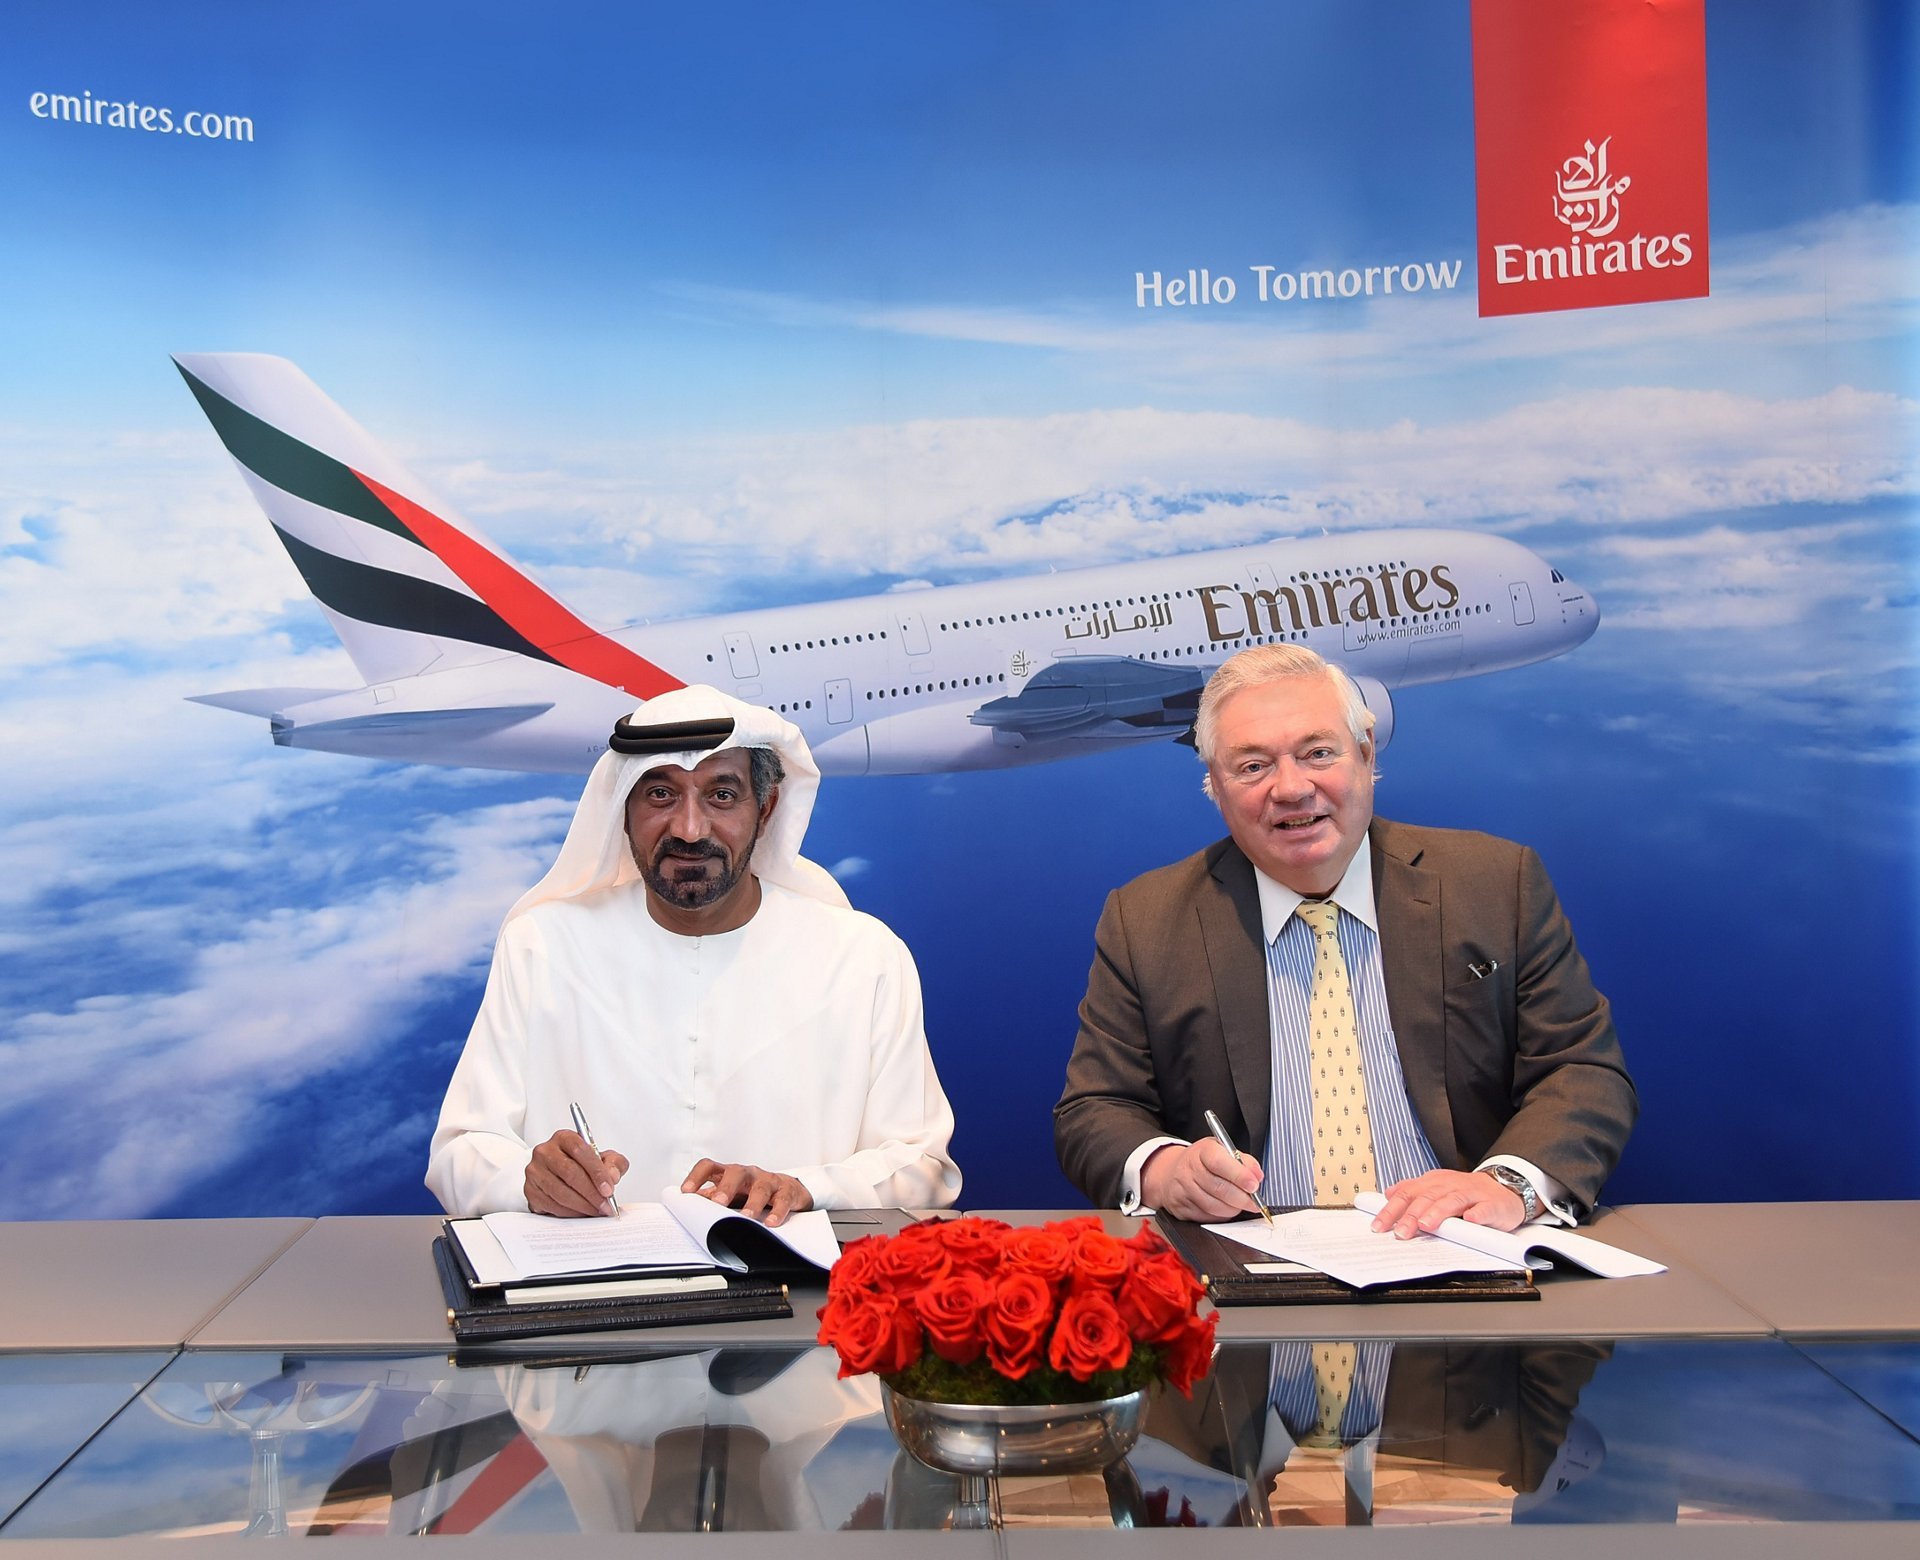 Signing the Memorandum of Understanding for 36 Airbus A380s are HH Sheikh Ahmed bin Saeed Al Maktoum, Chairman and Chief Executive, Emirates Airline and Group, and John Leahy, Chief Operating Officer - Customers, Airbus Commercial Aircraft